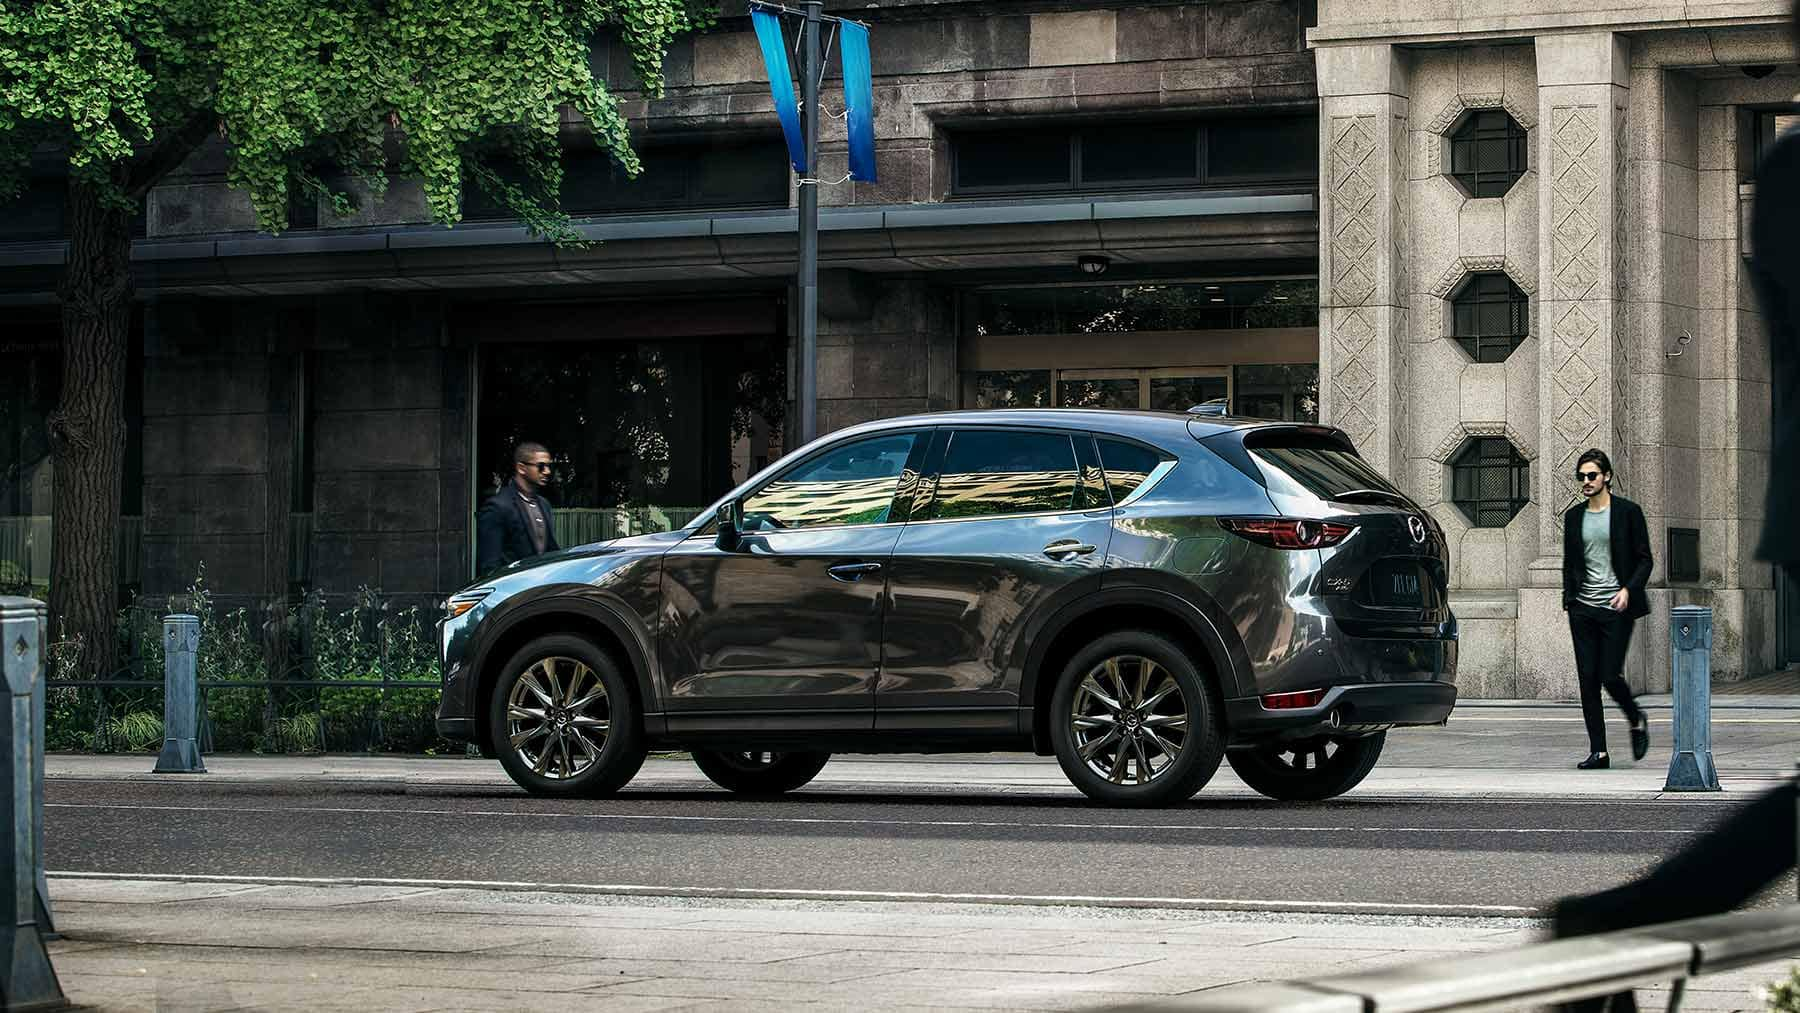 2019 Mazda CX-5 parked on road